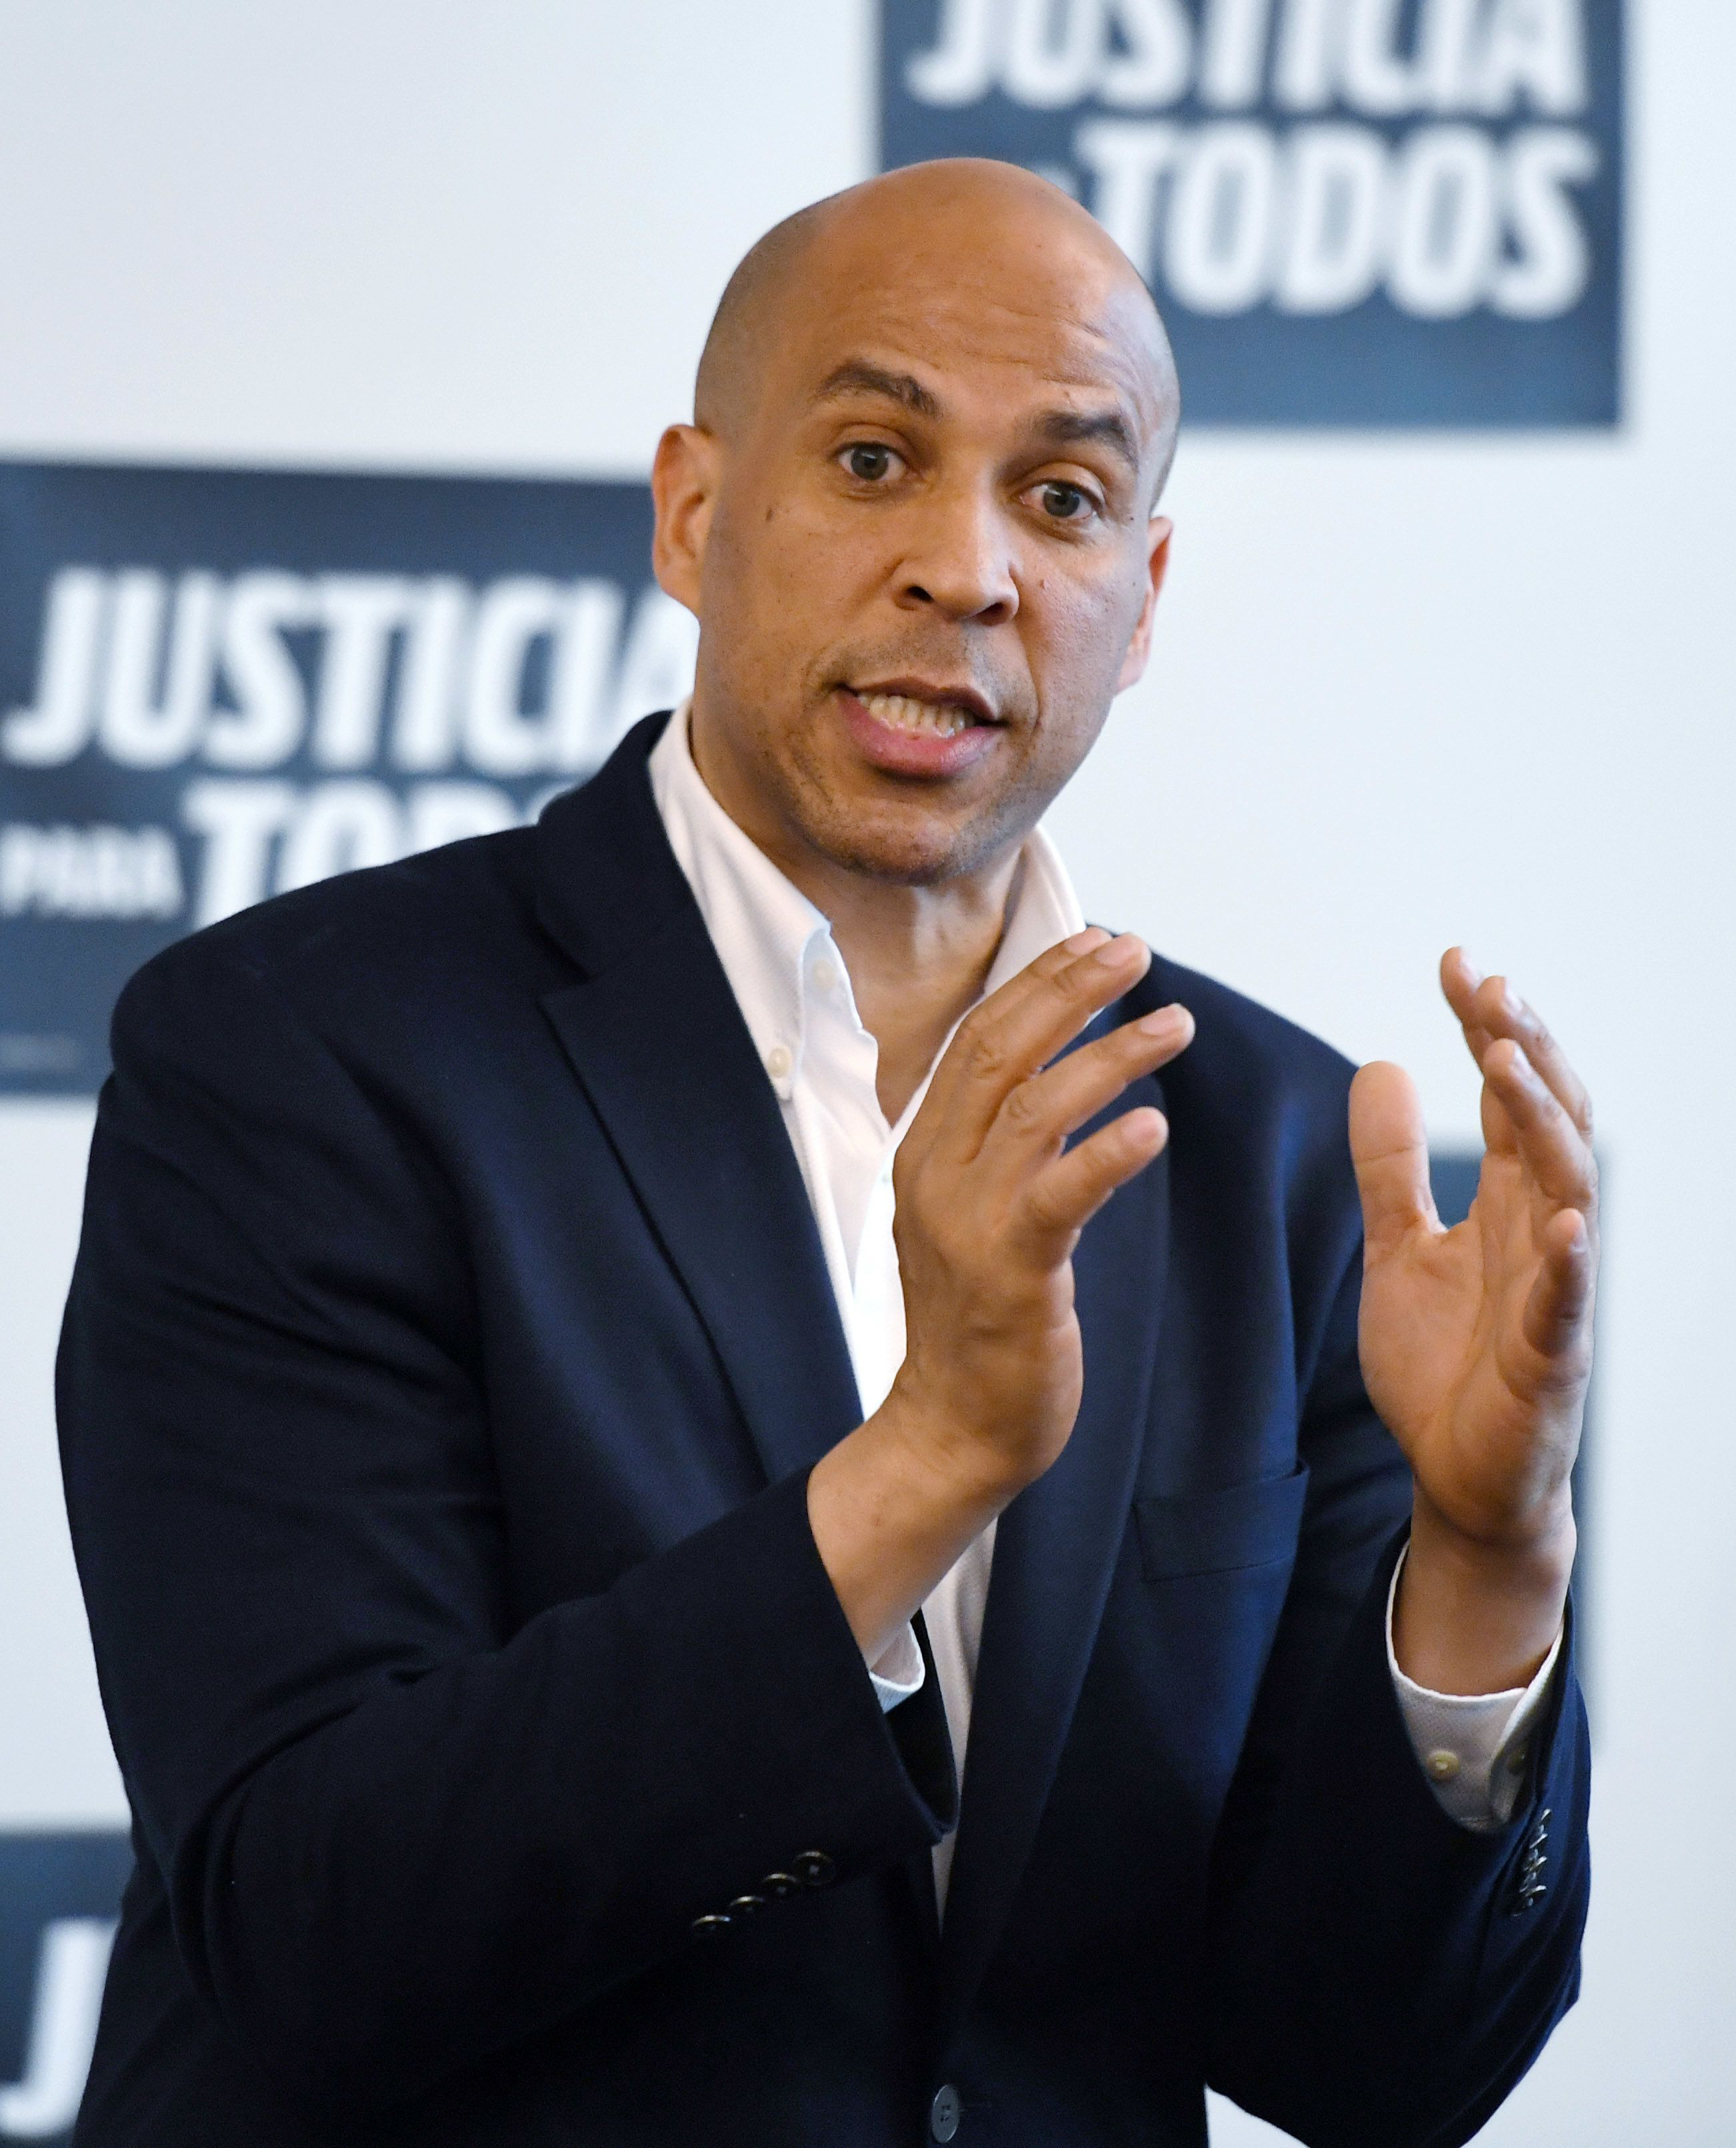 Cory Booker On Abortion: 'Women Should Not Have To Face This Fight Alone'